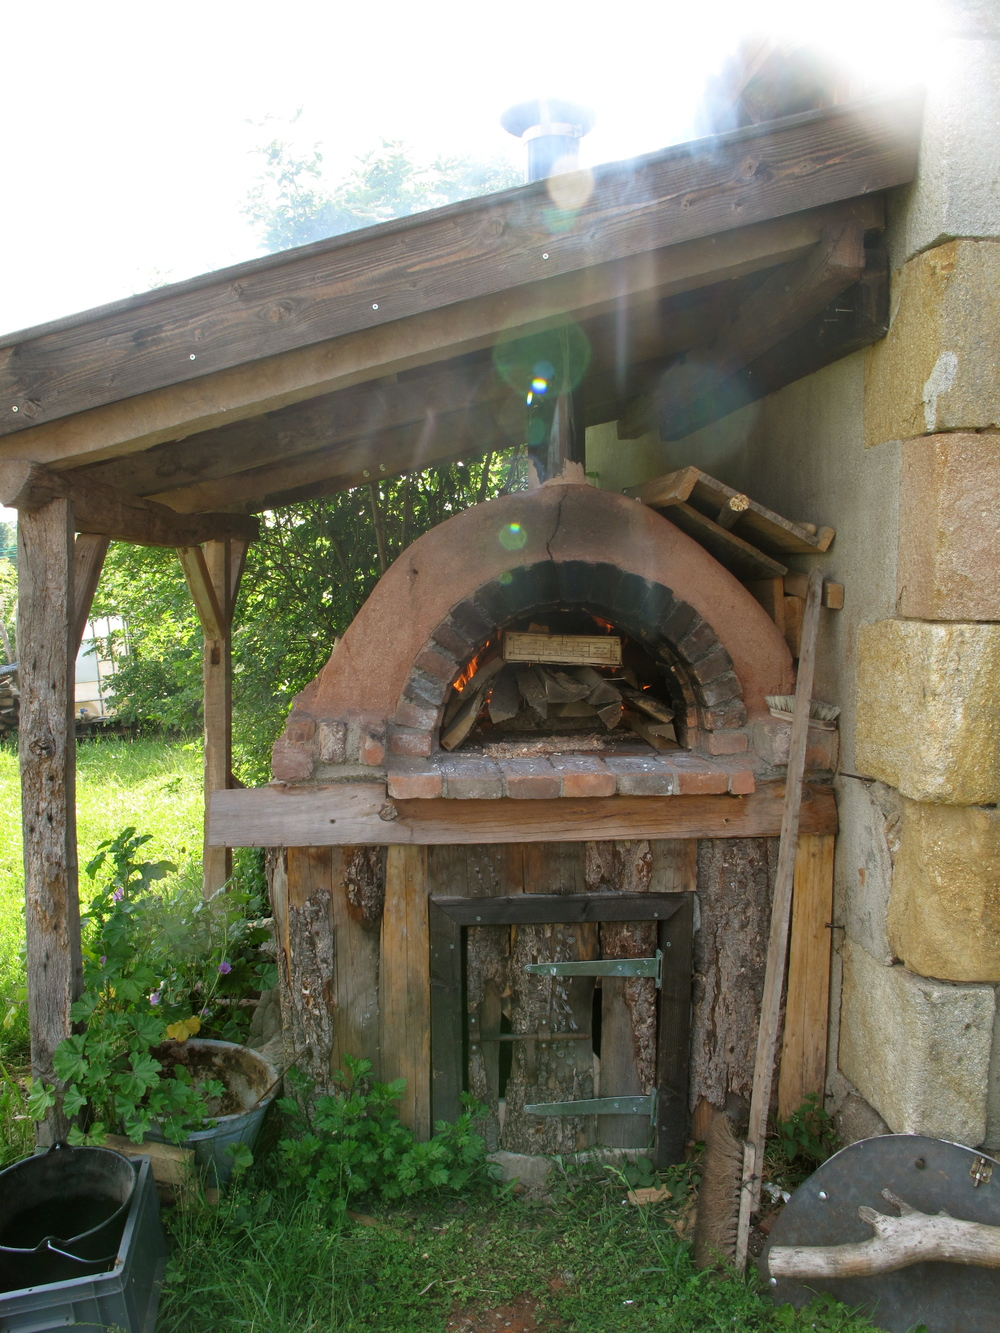 Pizza oven at Brenazet - made of cob